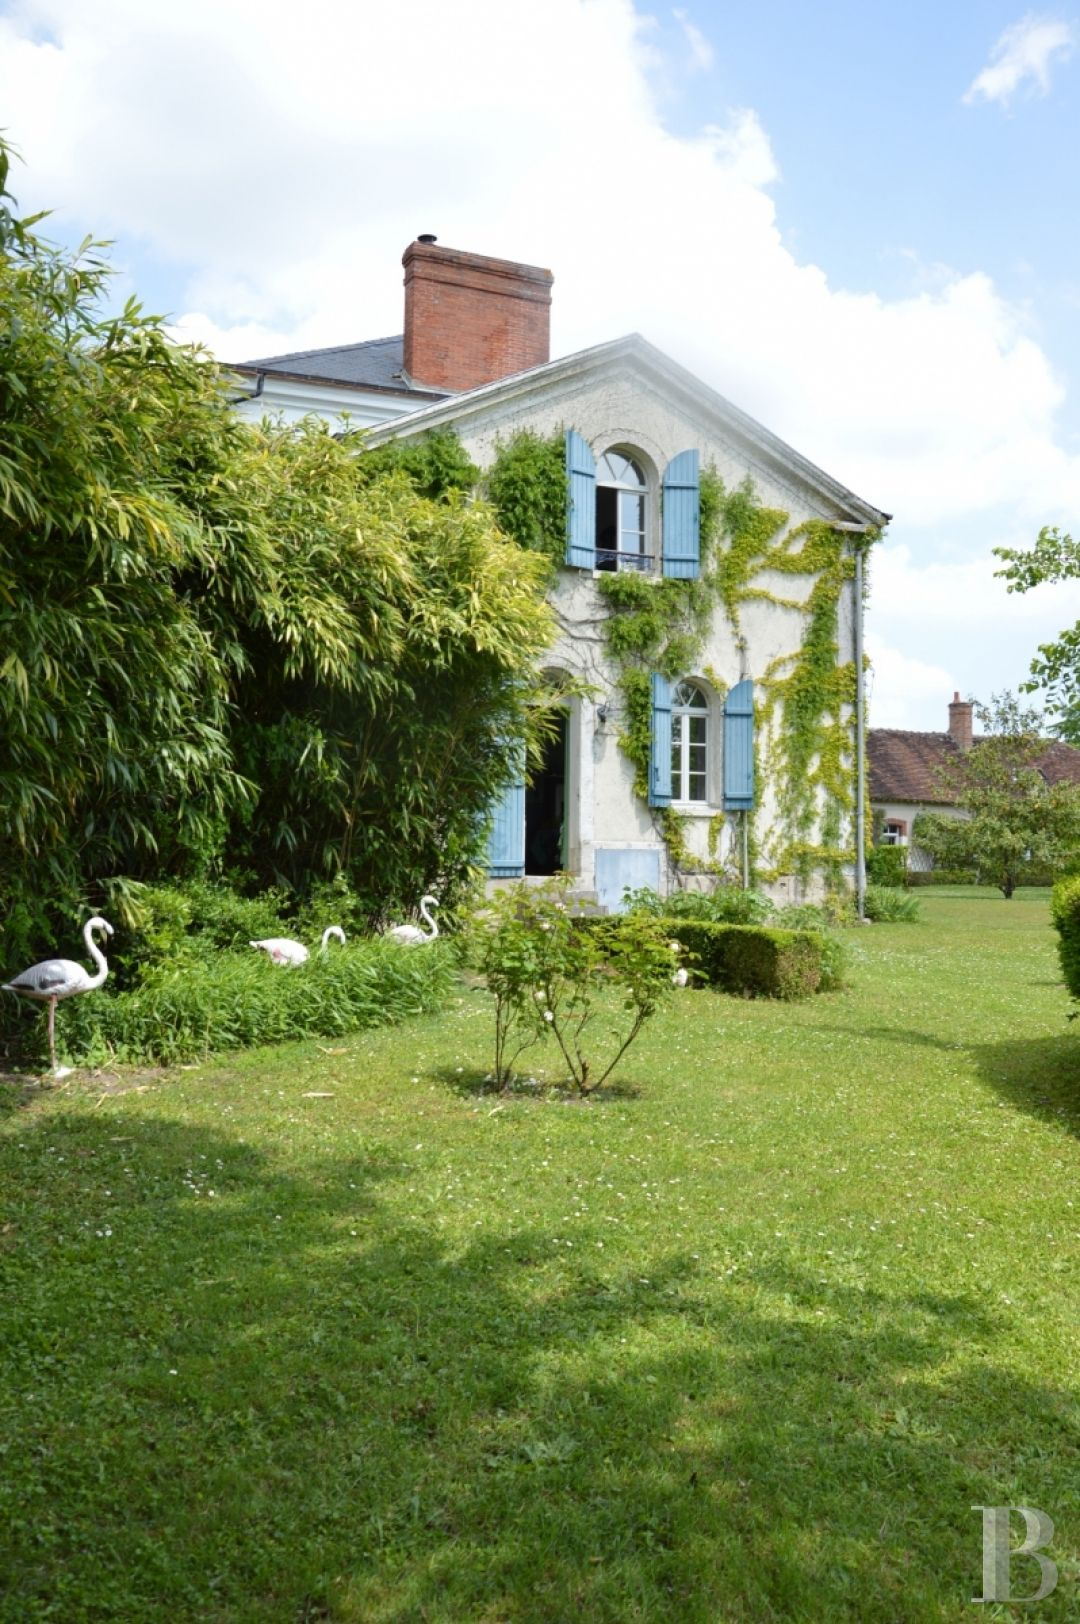 property for sale France center val de loire residences village - 3 zoom